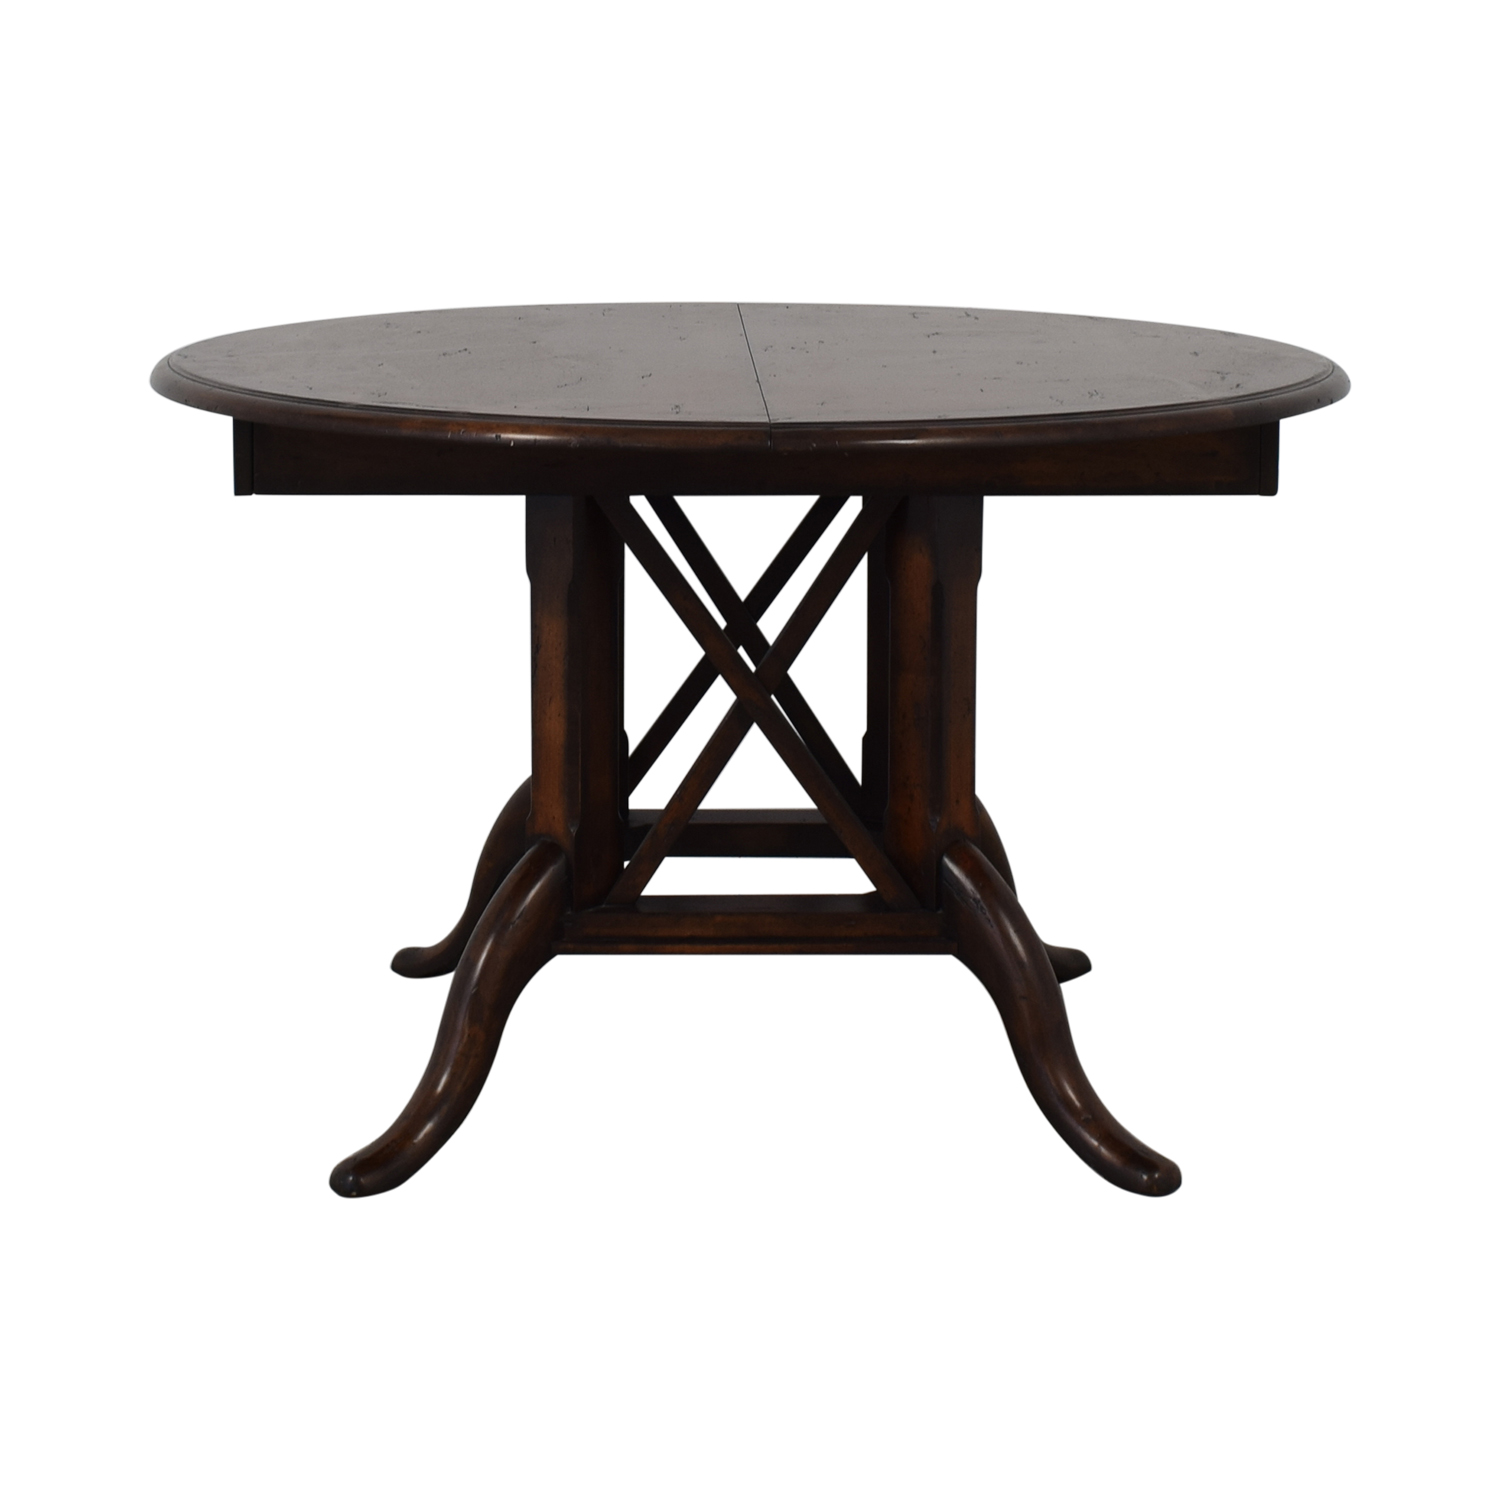 Henredon Furniture Henredon Mahogany Extension Dining Room Table coupon